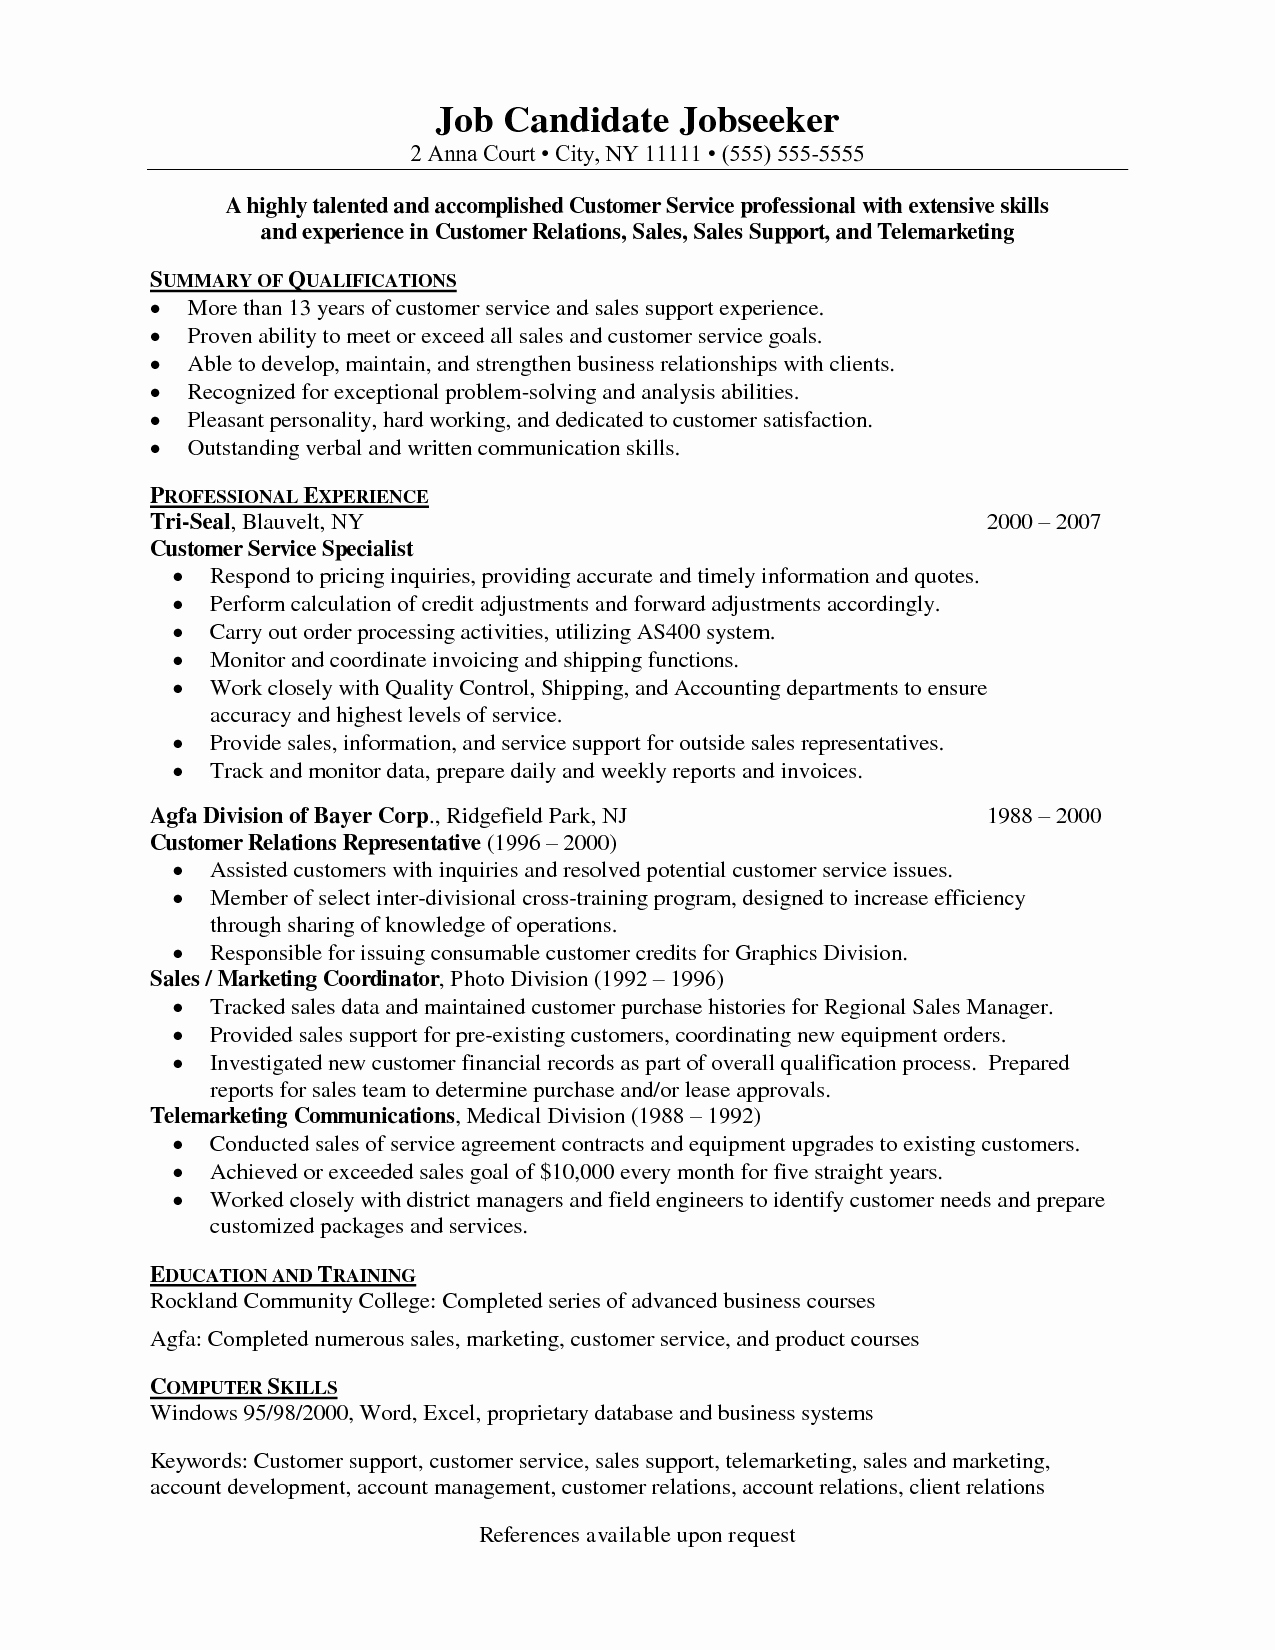 Resume Customer Services Representative Service Skills